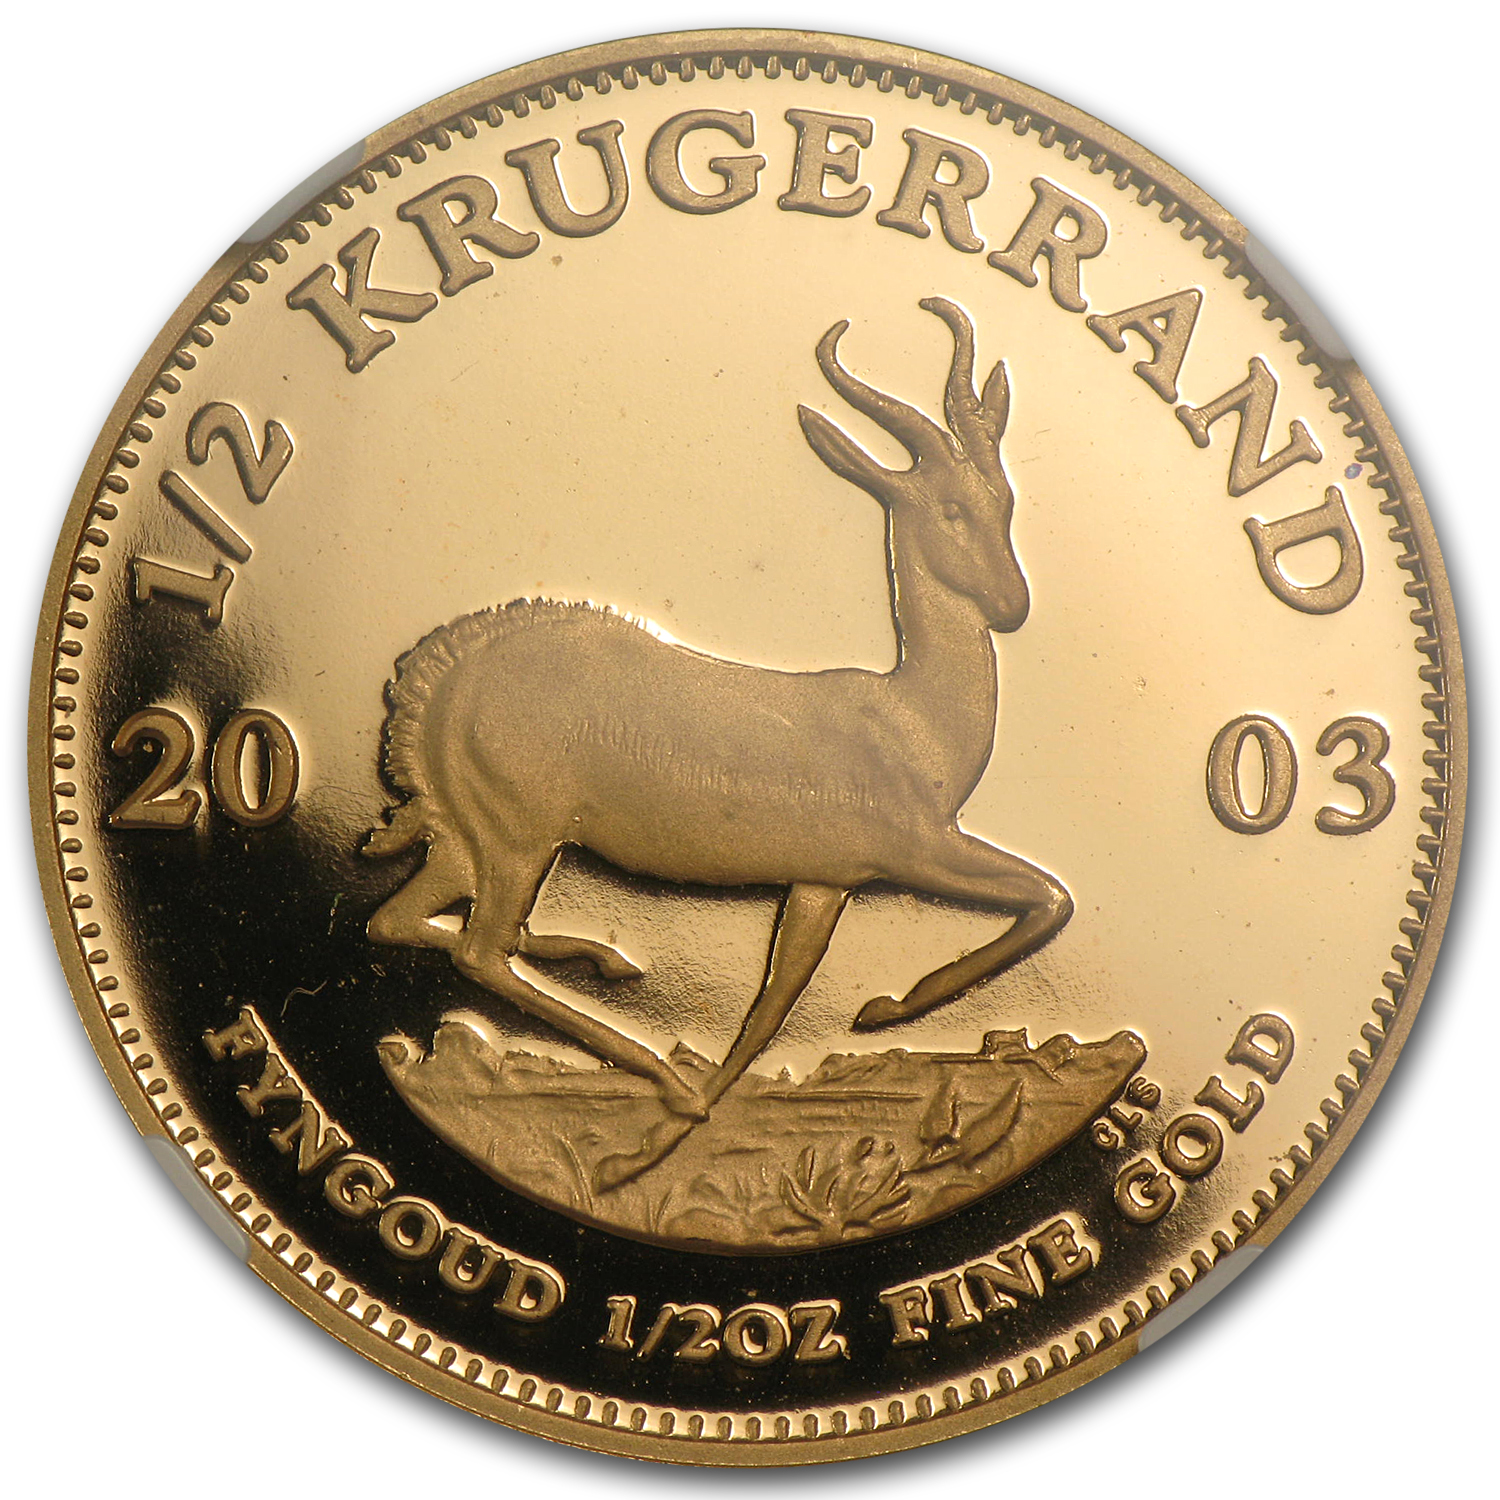 2003 1/2 oz Gold South African Krugerrand PF-68 NGC